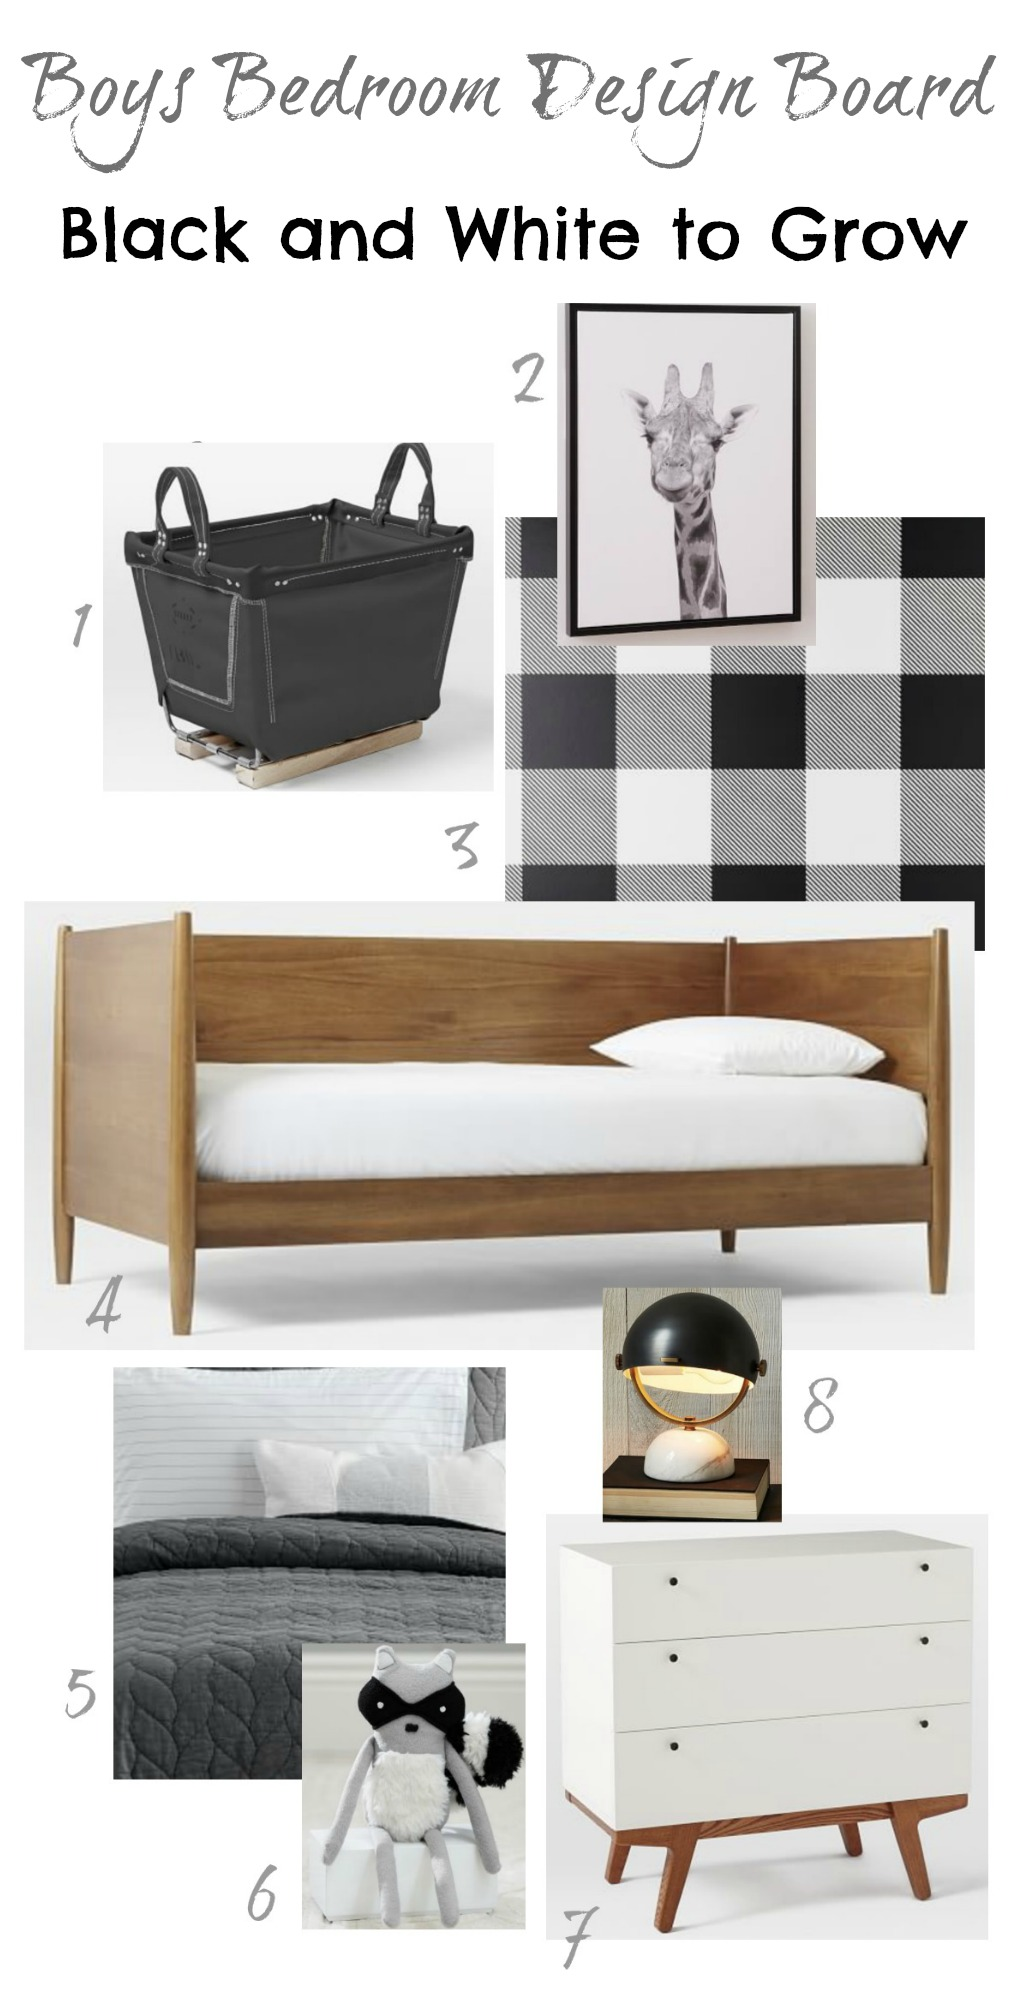 Boys Bedroom Design Board- Black and White to Grow with them!